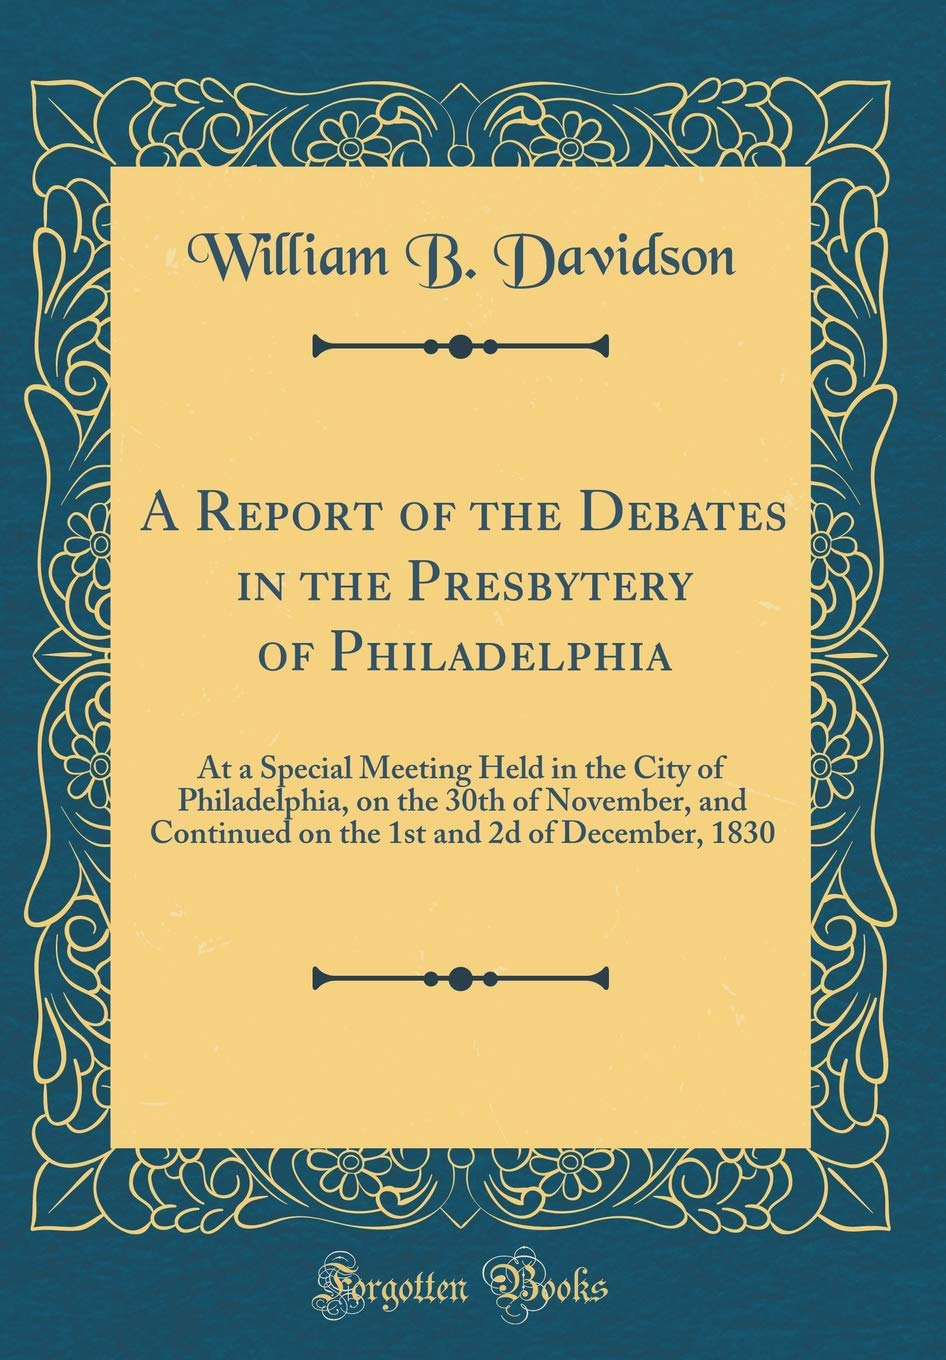 Download A Report of the Debates in the Presbytery of Philadelphia: At a Special Meeting Held in the City of Philadelphia, on the 30th of November, and ... and 2d of December, 1830 (Classic Reprint) pdf epub